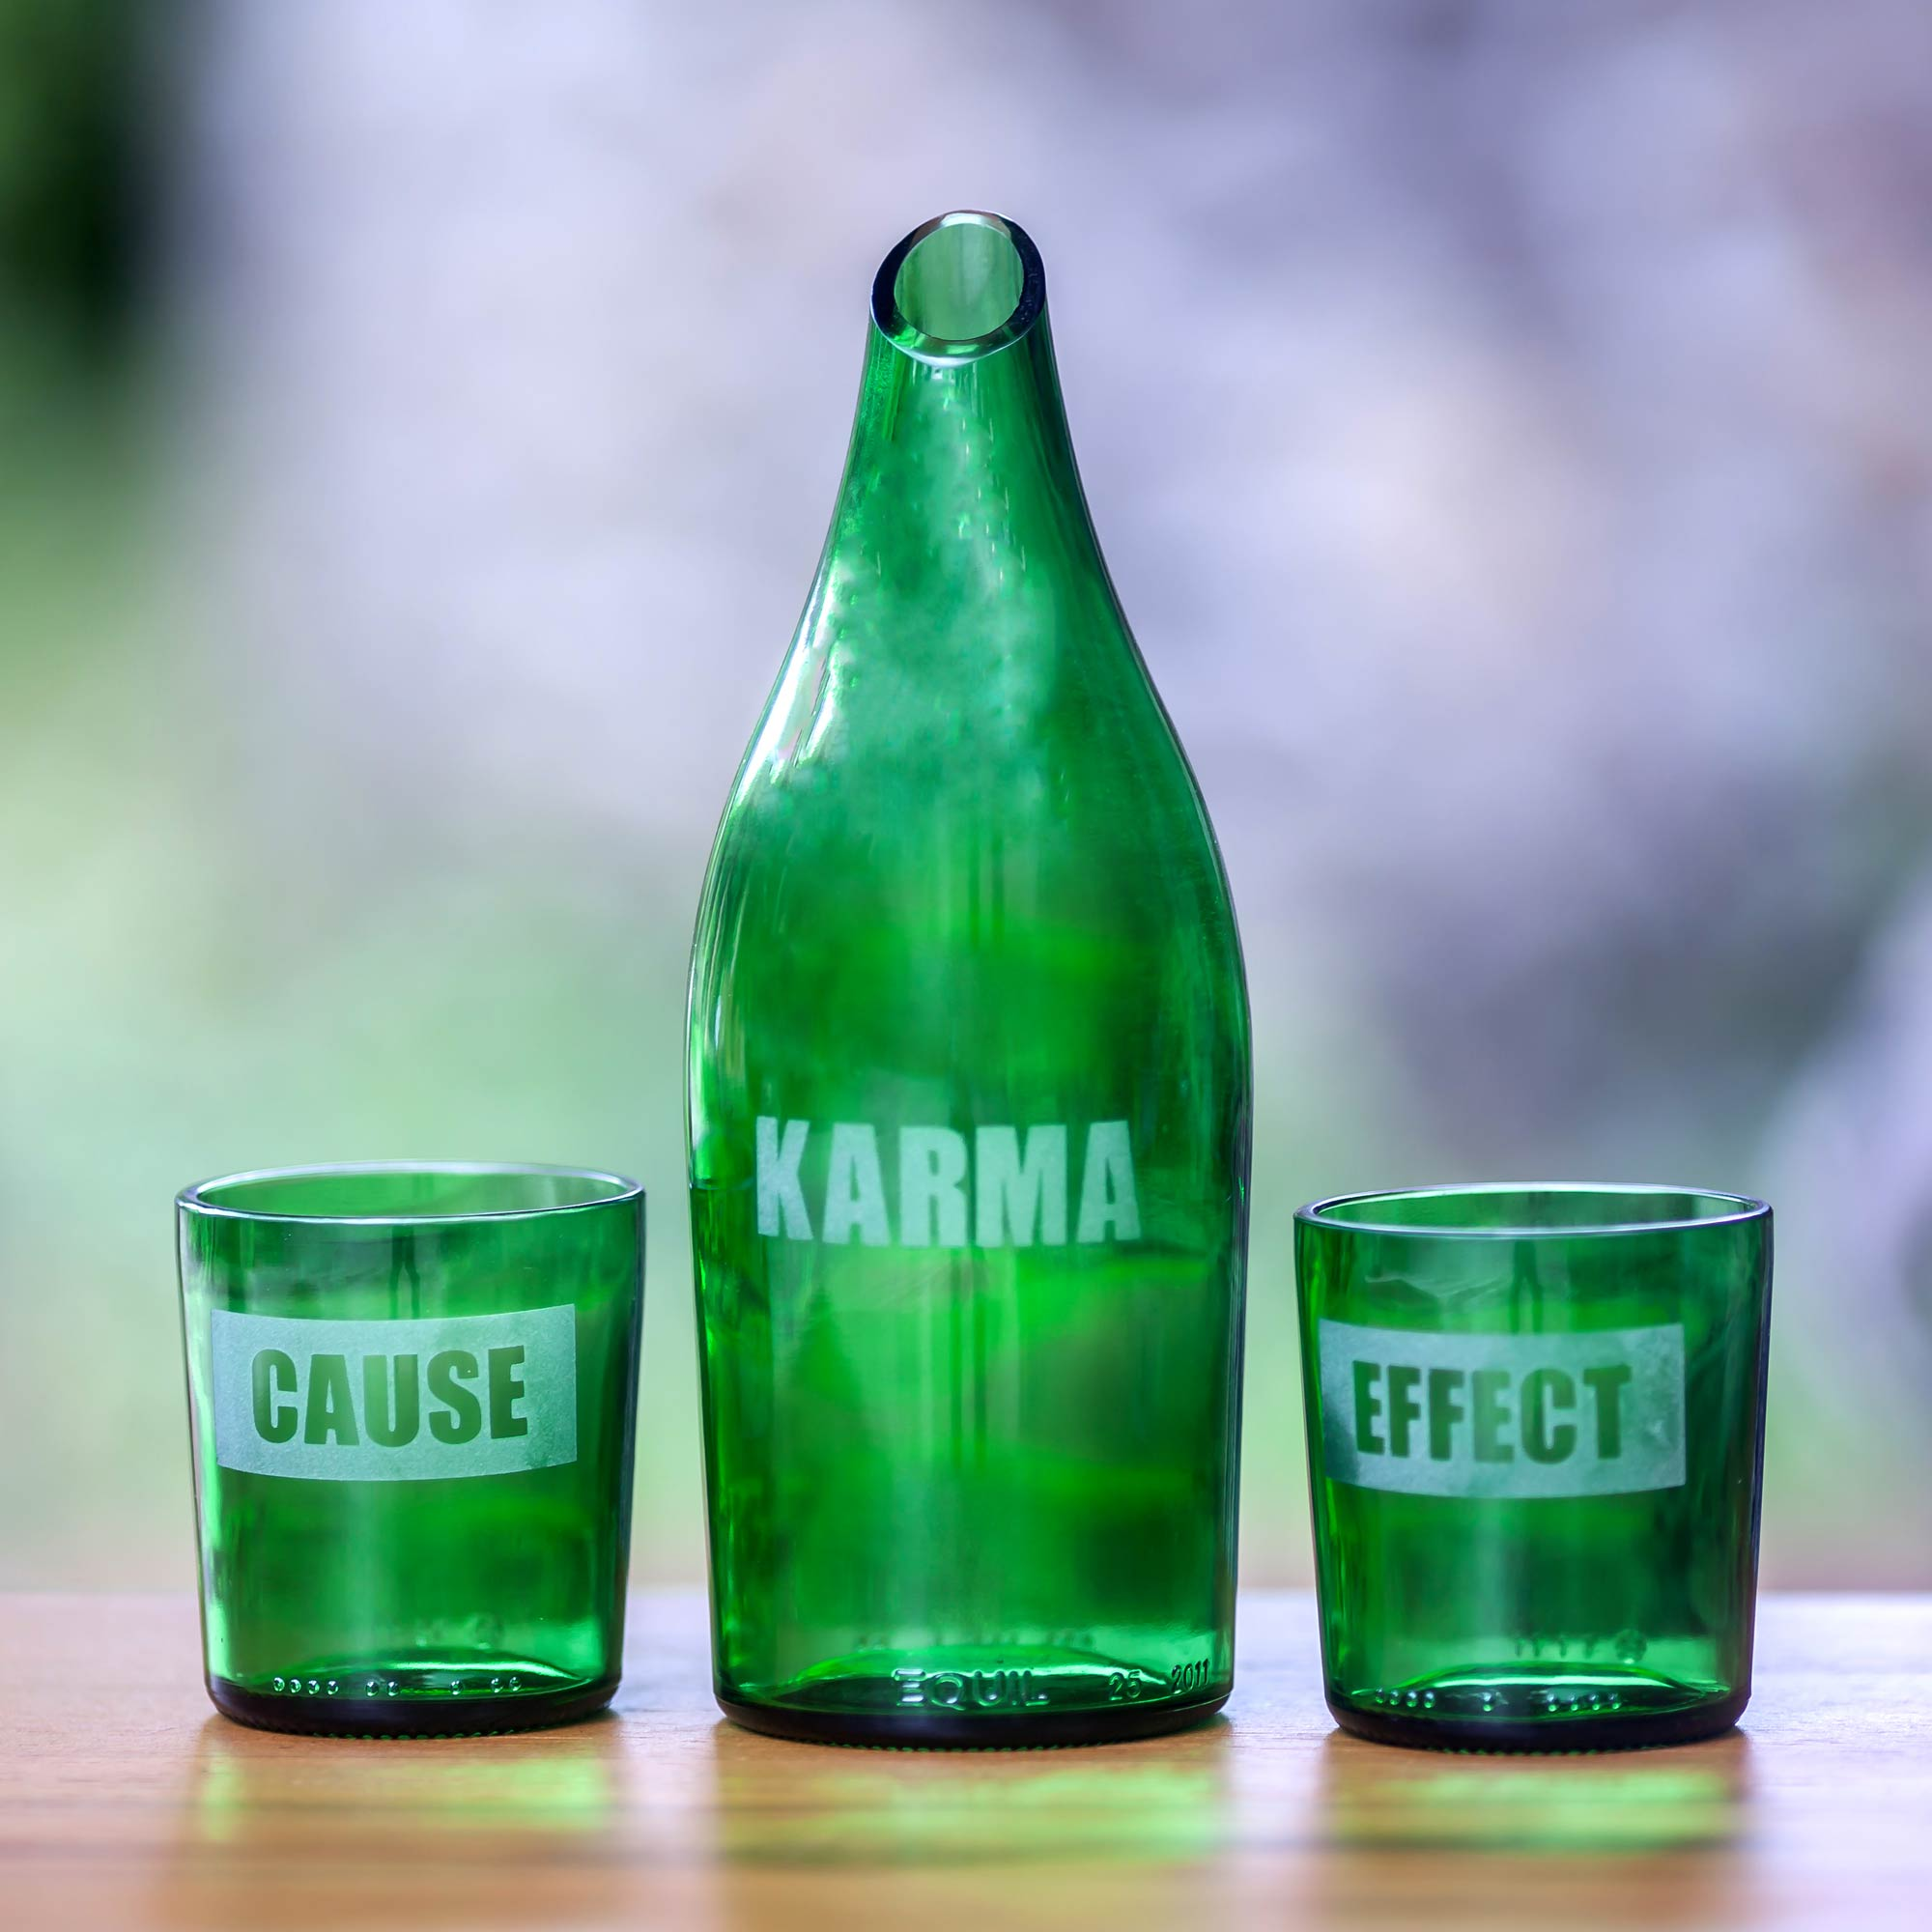 Karma Effect Recycled glass carafe and glasses go eco-friendly